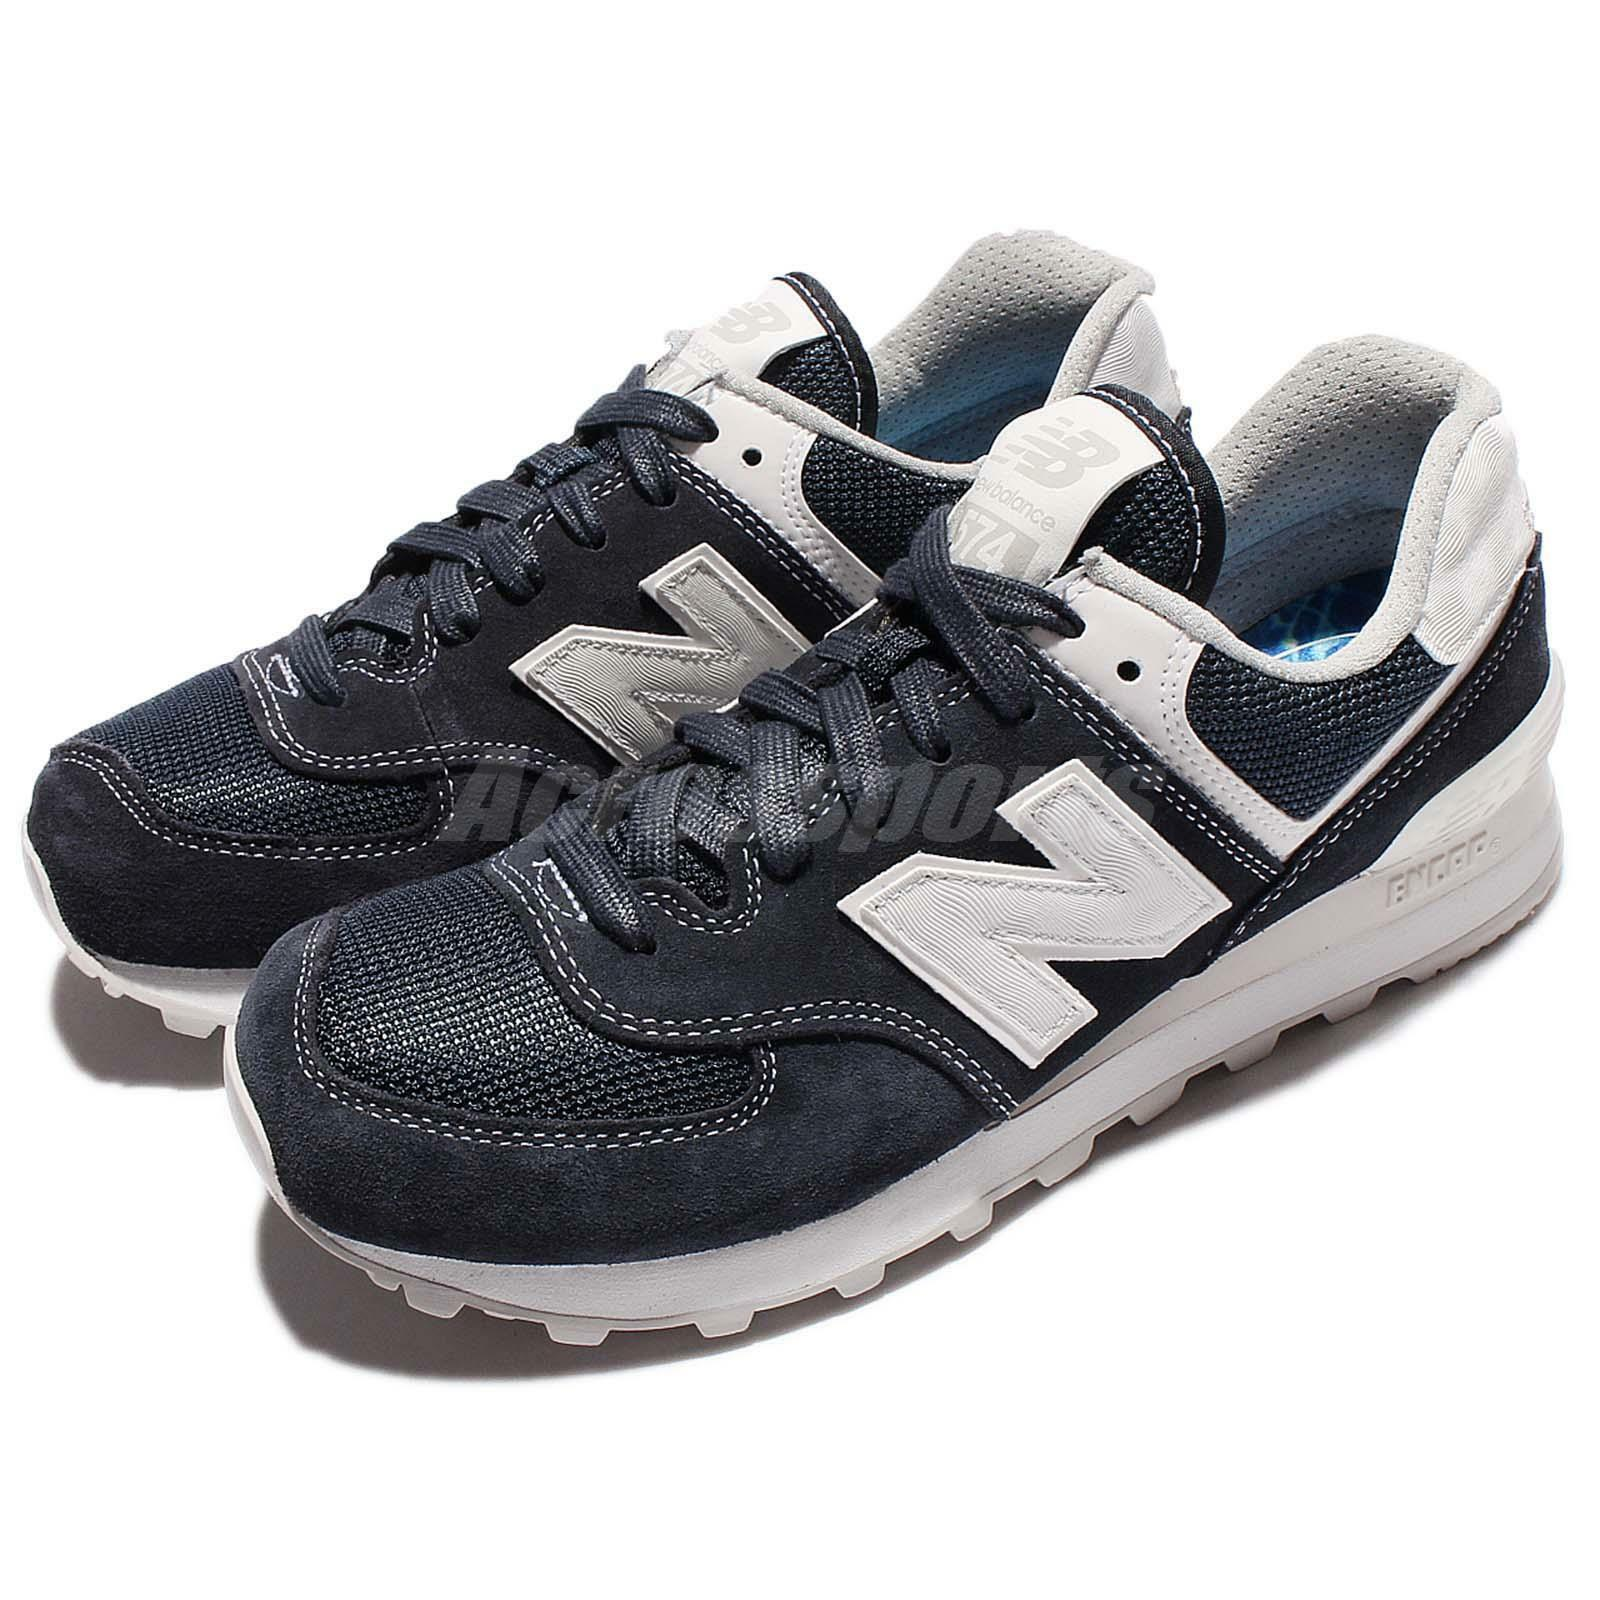 New Balance ML574SEE D bluee Suede Classic Men Running shoes Sneakers ML574SEED